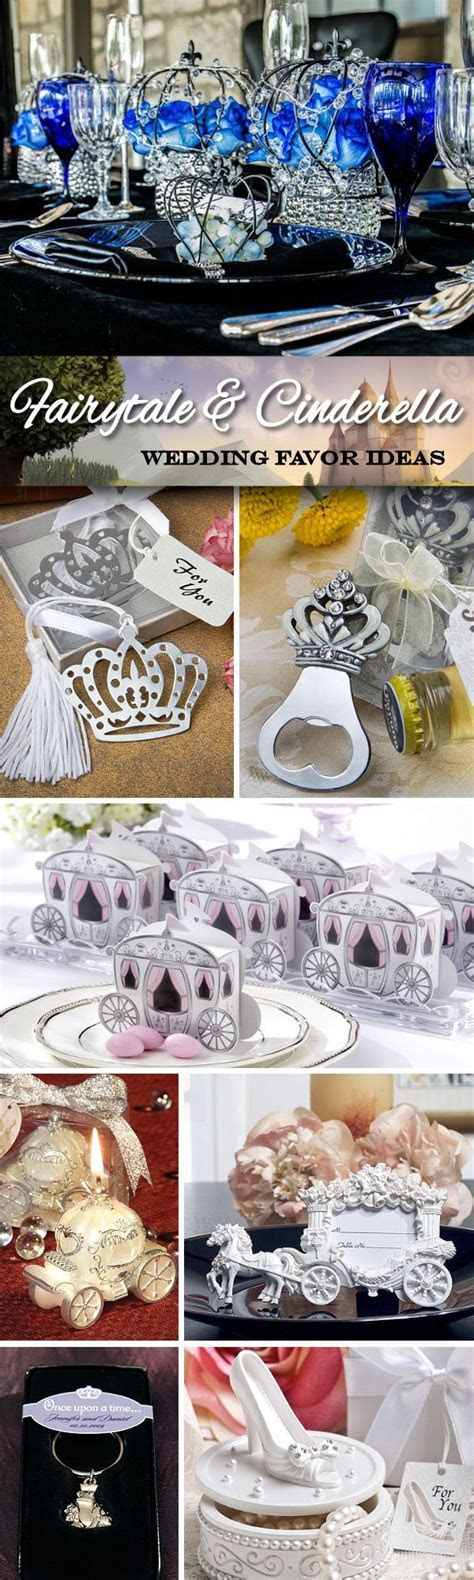 Having a Fairytale or Cinderella themed wedding? Check out